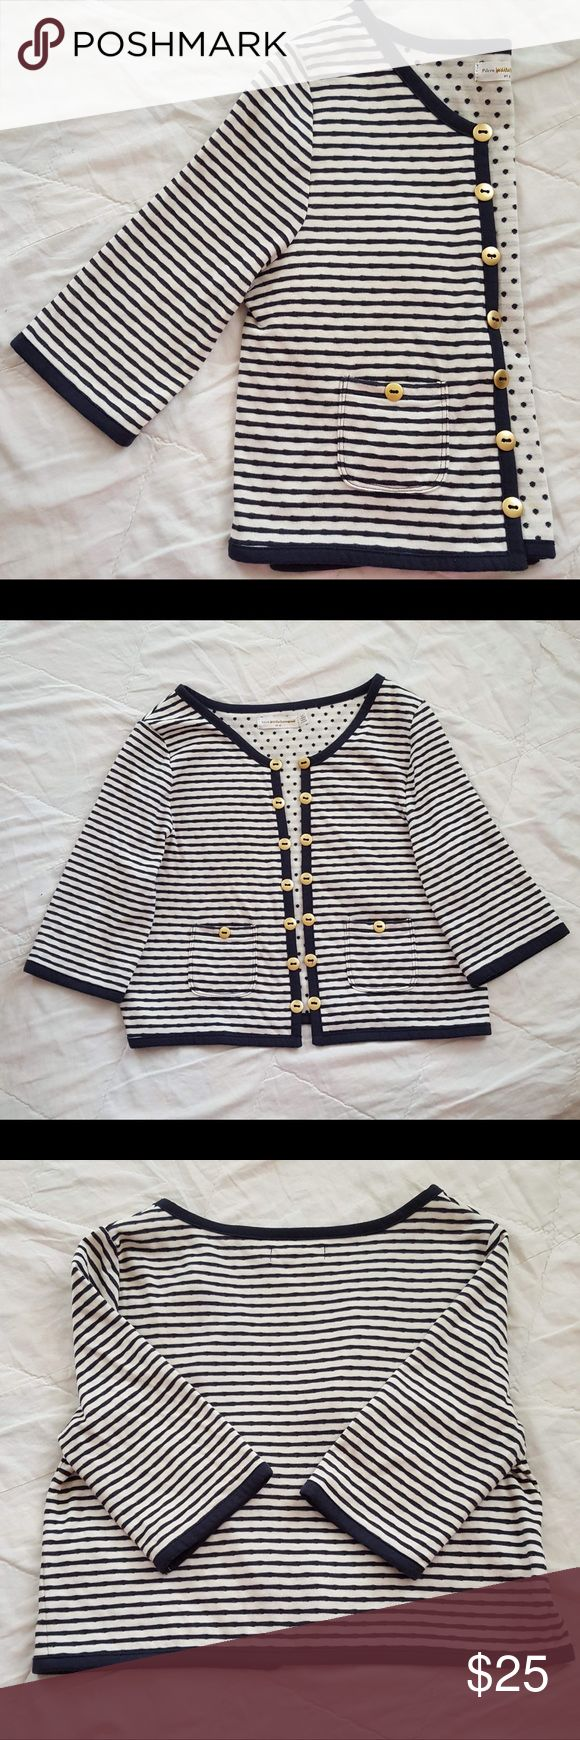 """Anthropologie striped nautical cardigan sweater Pilcro and the letterpress navy and white striped cardigan sweater, blue polkadot interior decorative buttons on front with small pockets 1/2 sleeve lightweight, perfect for summer EUC  Chest 17 1/2"""" Length 17"""" Bin#3 Anthropologie Sweaters Cardigans"""